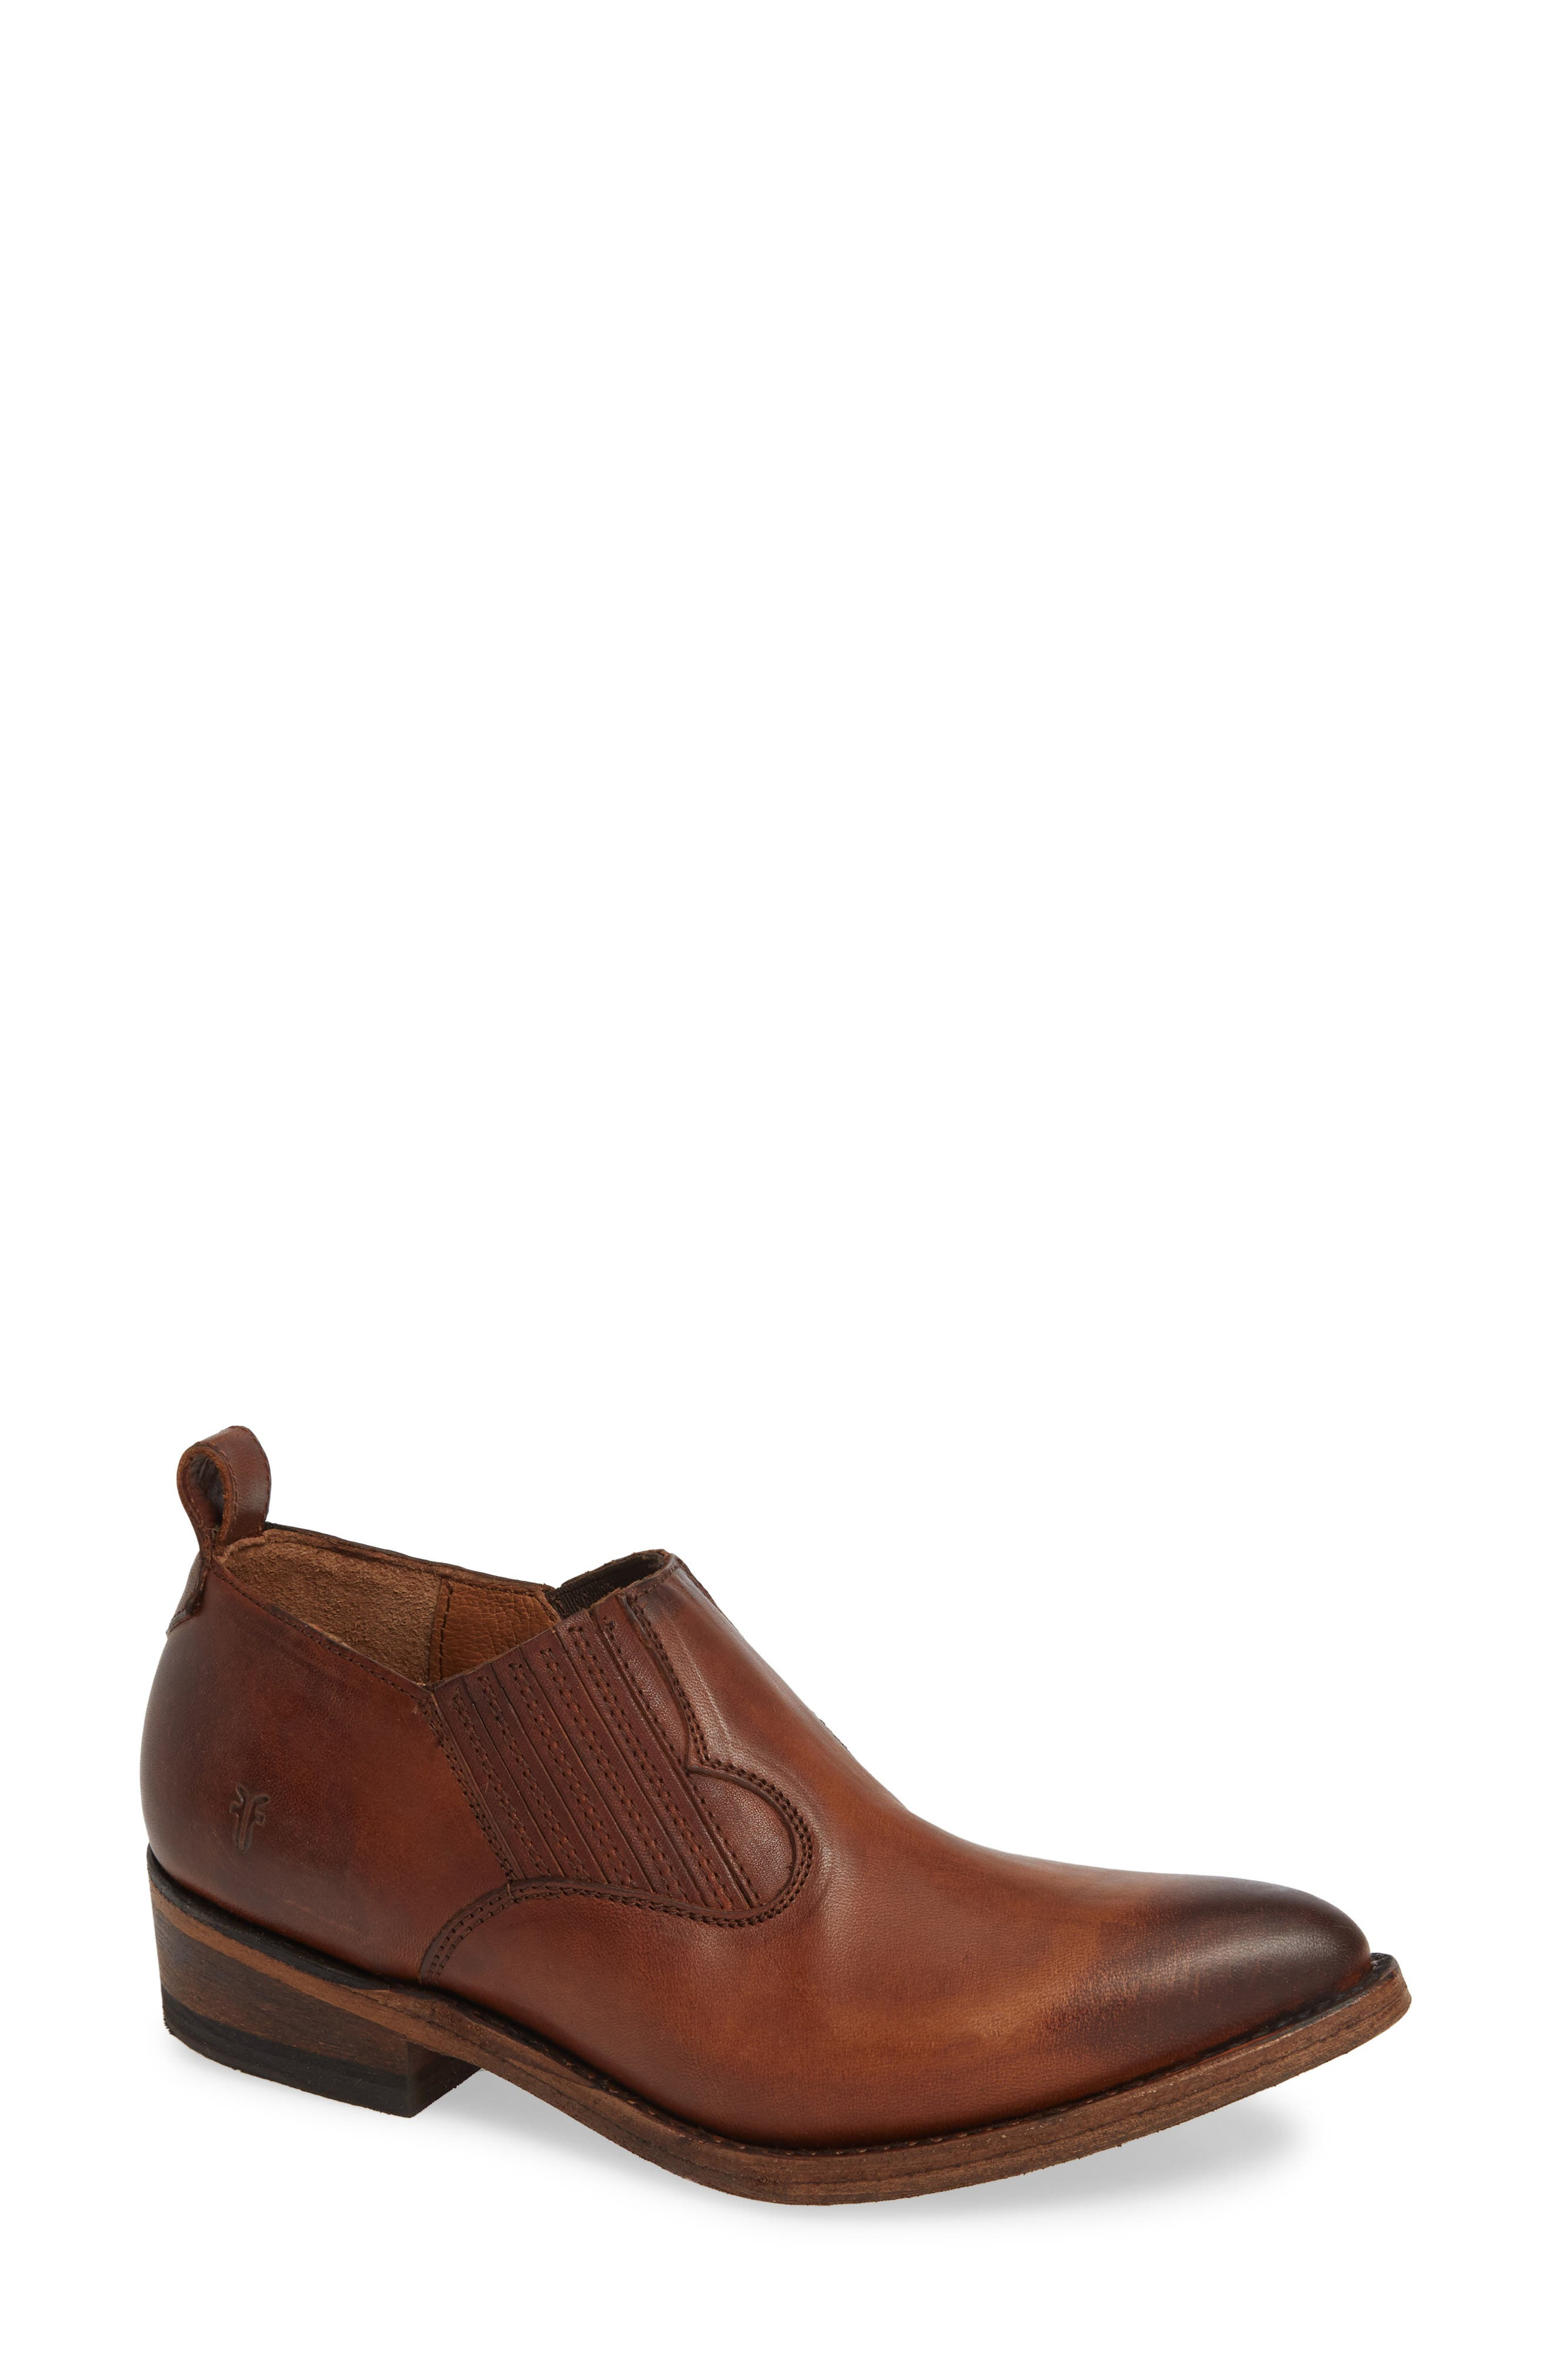 Frye Billy Shootie, Brown